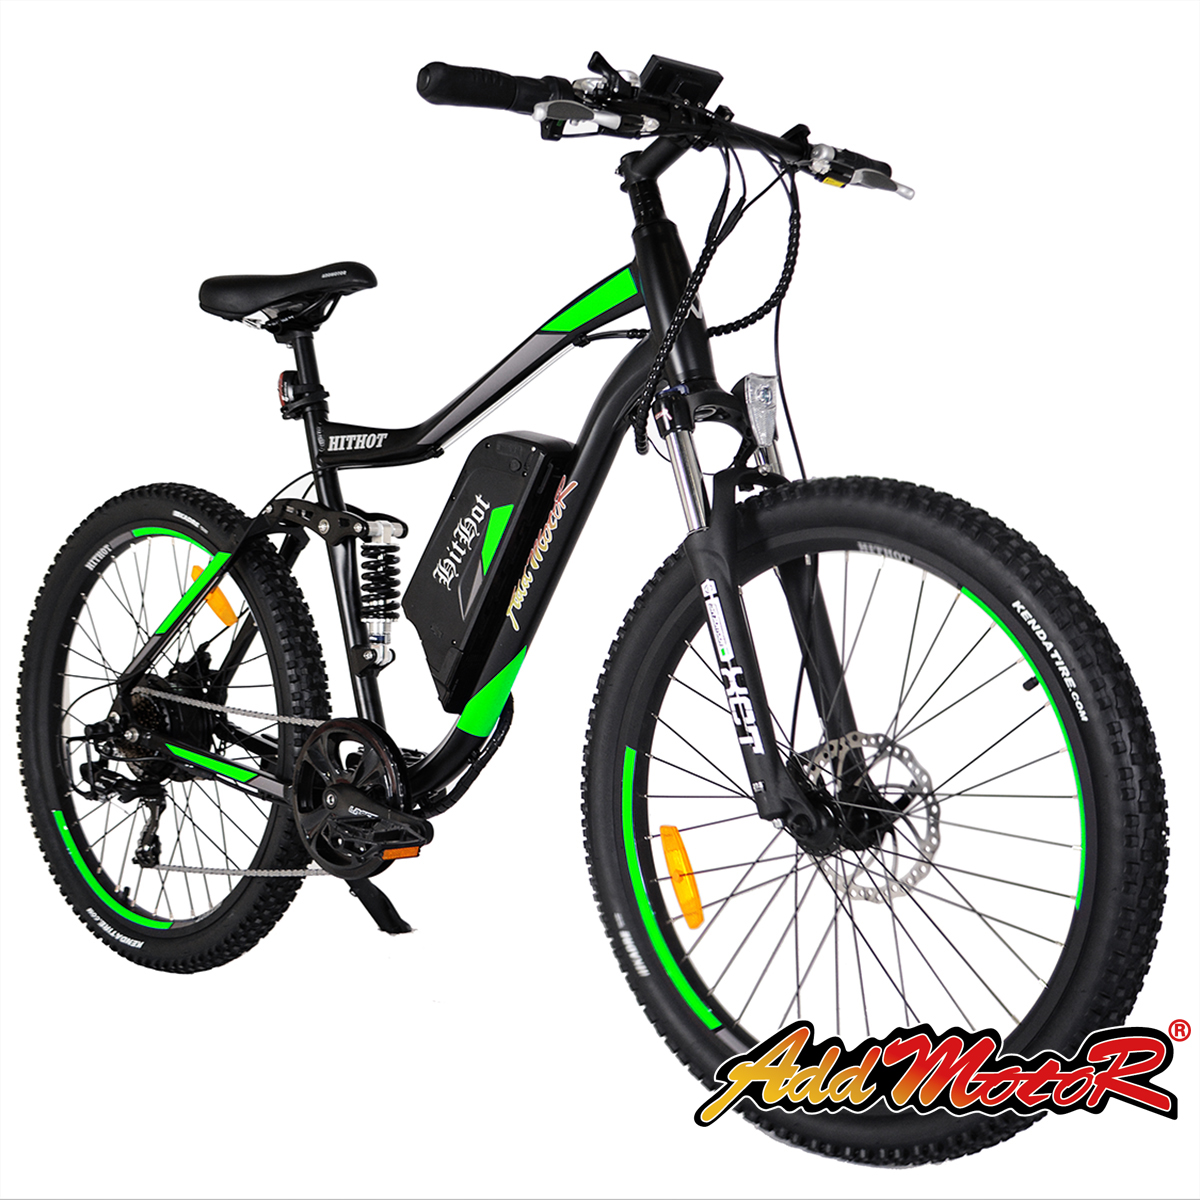 Addmotor HITHOT Electric Bicycle 48V 500W Motor 10.4 AH Electric Bikes H1 Sport Bike Mountain E-bike 2018 For Adults